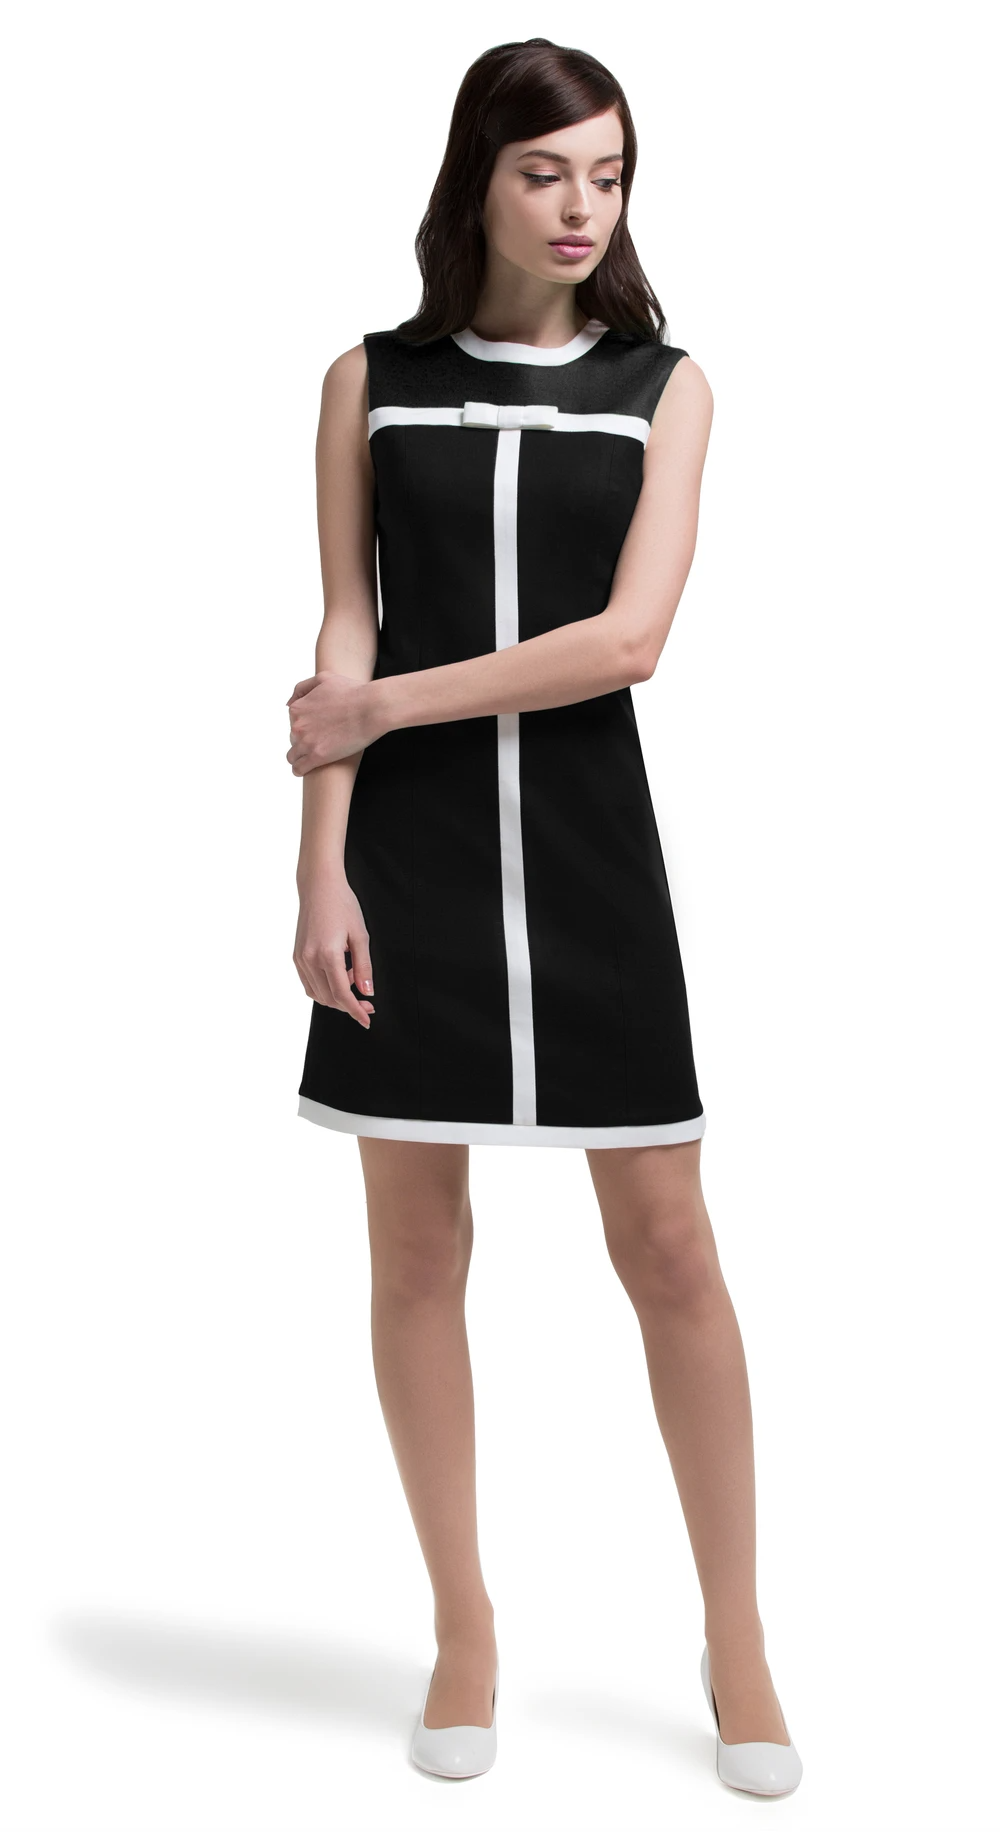 MARMALADE Mod 60s Style Dress with Black Panel -   60s style Dress